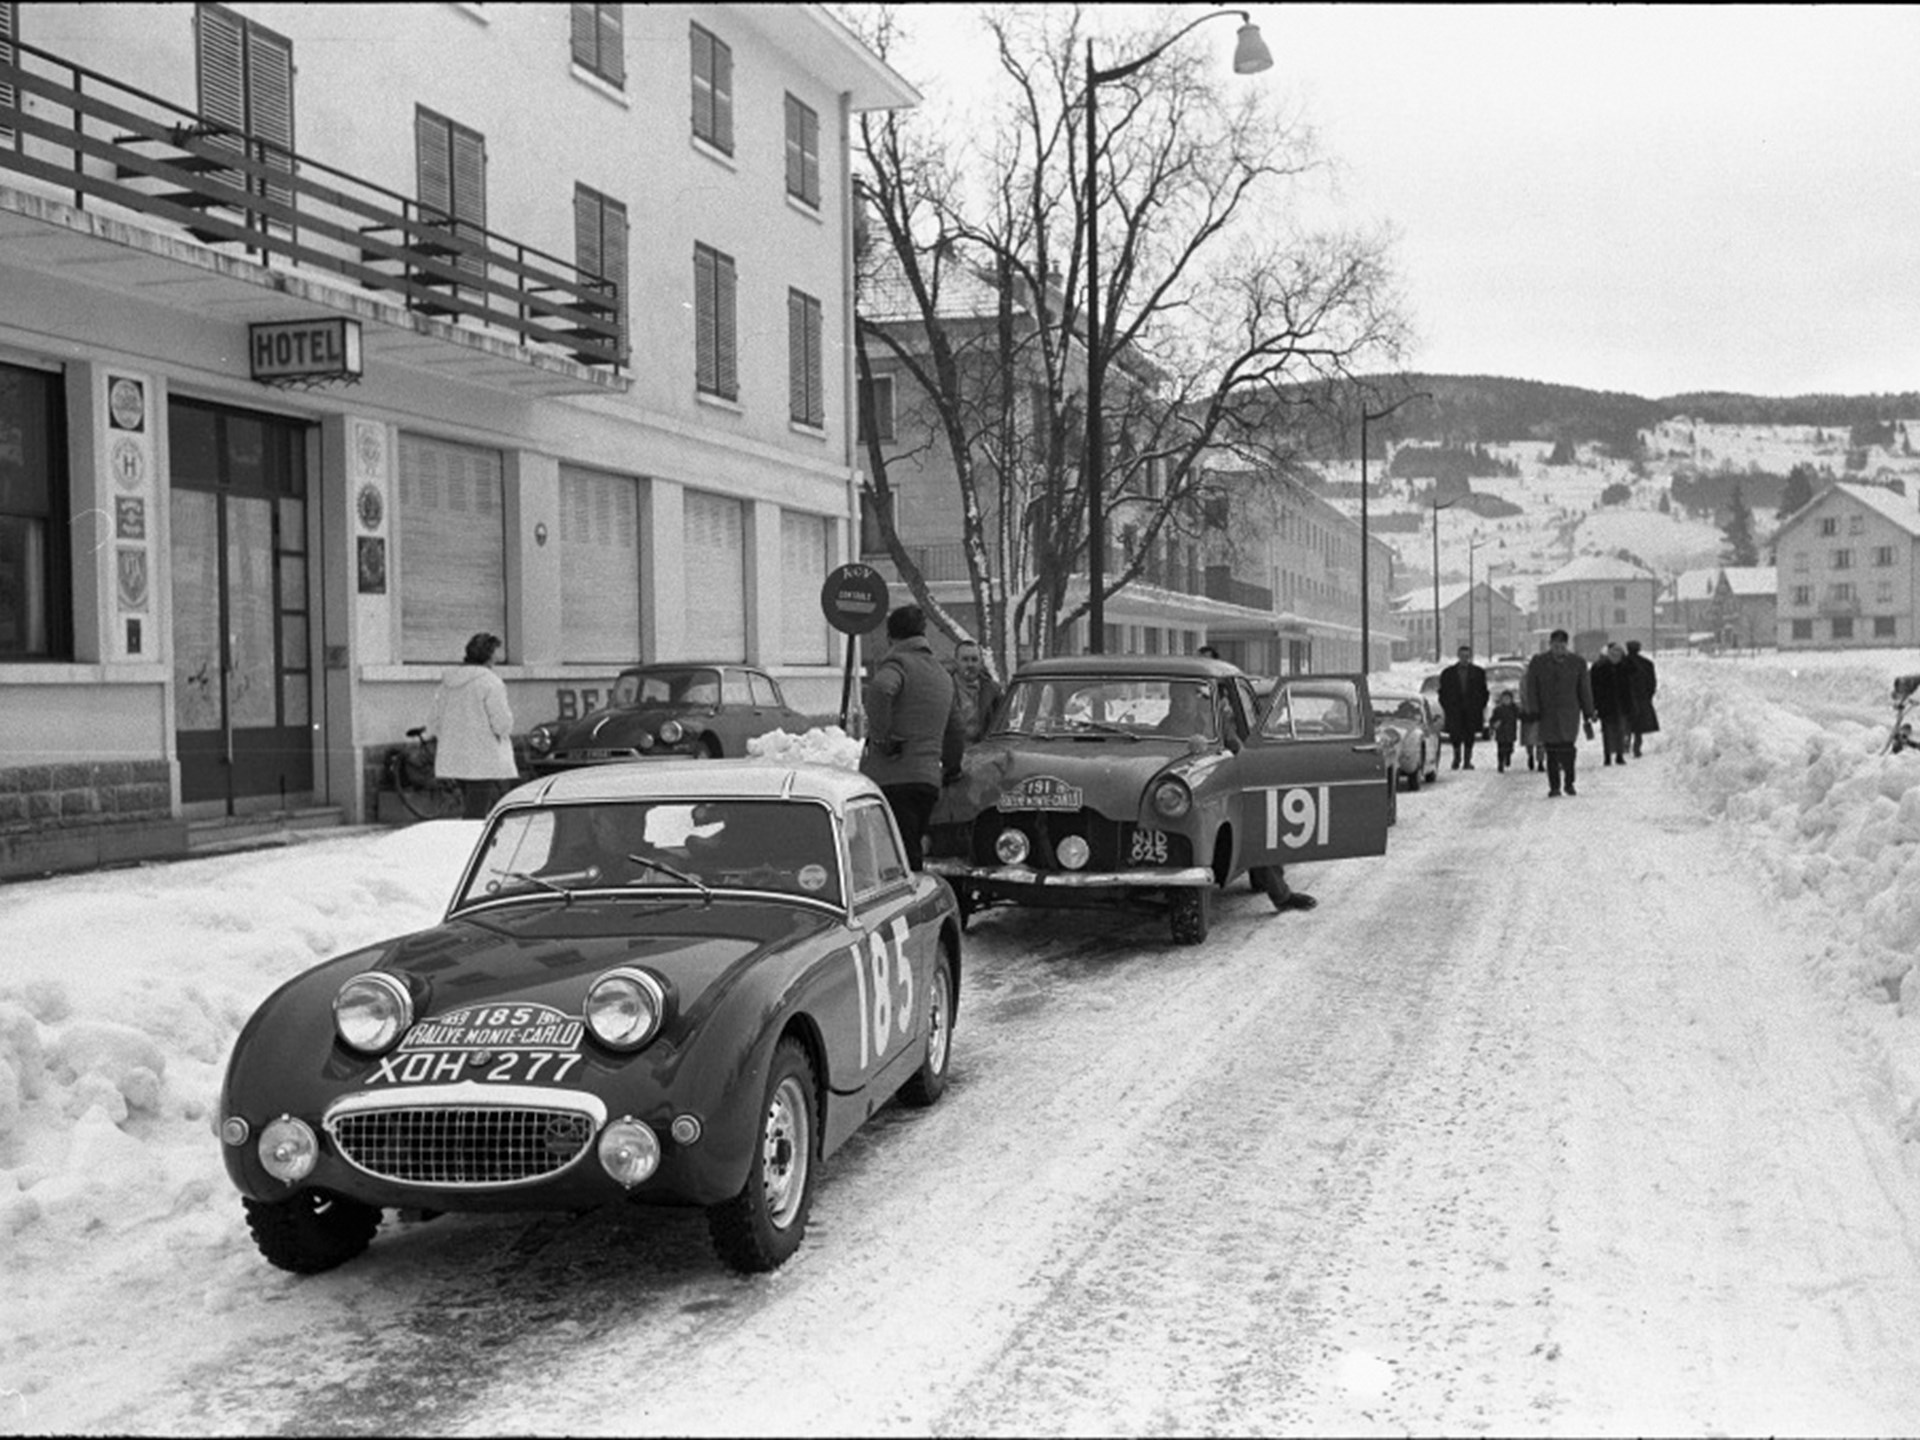 XOH 277 on the Monte Carlo Rally in 1959, where it finished 5th in class.